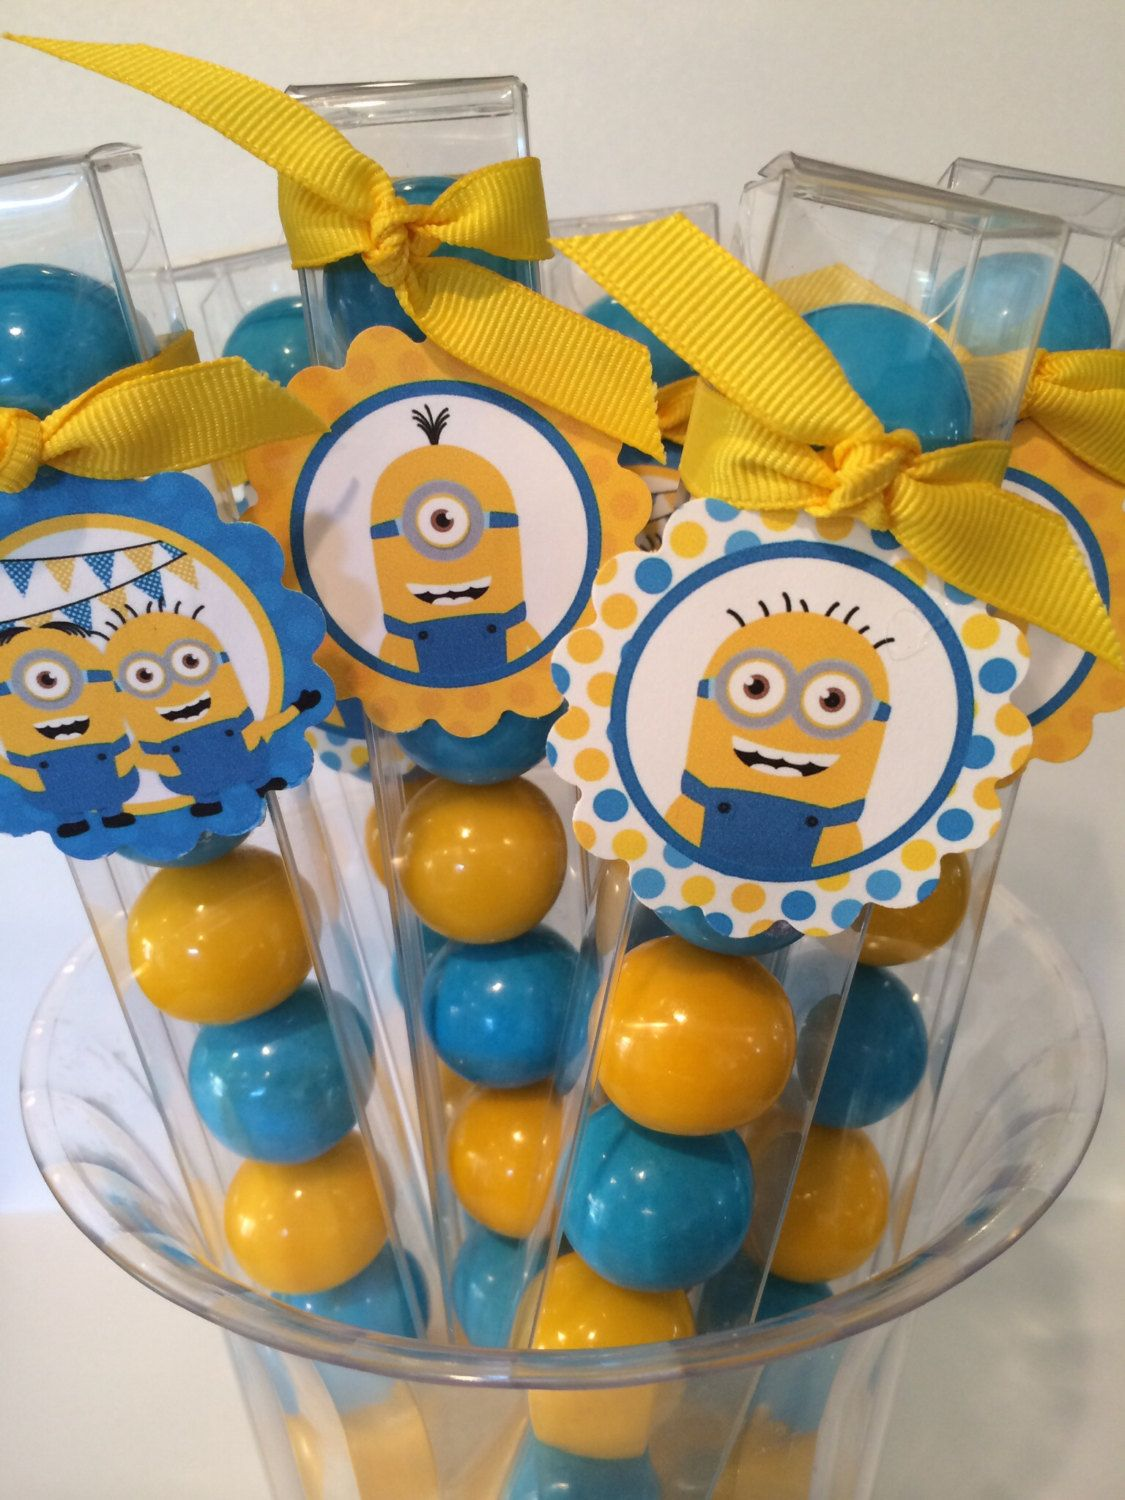 6 Despicable Me Minion - Birthday Party Favor Gumball Candy by LolasSweetsAndTreats on Etsy